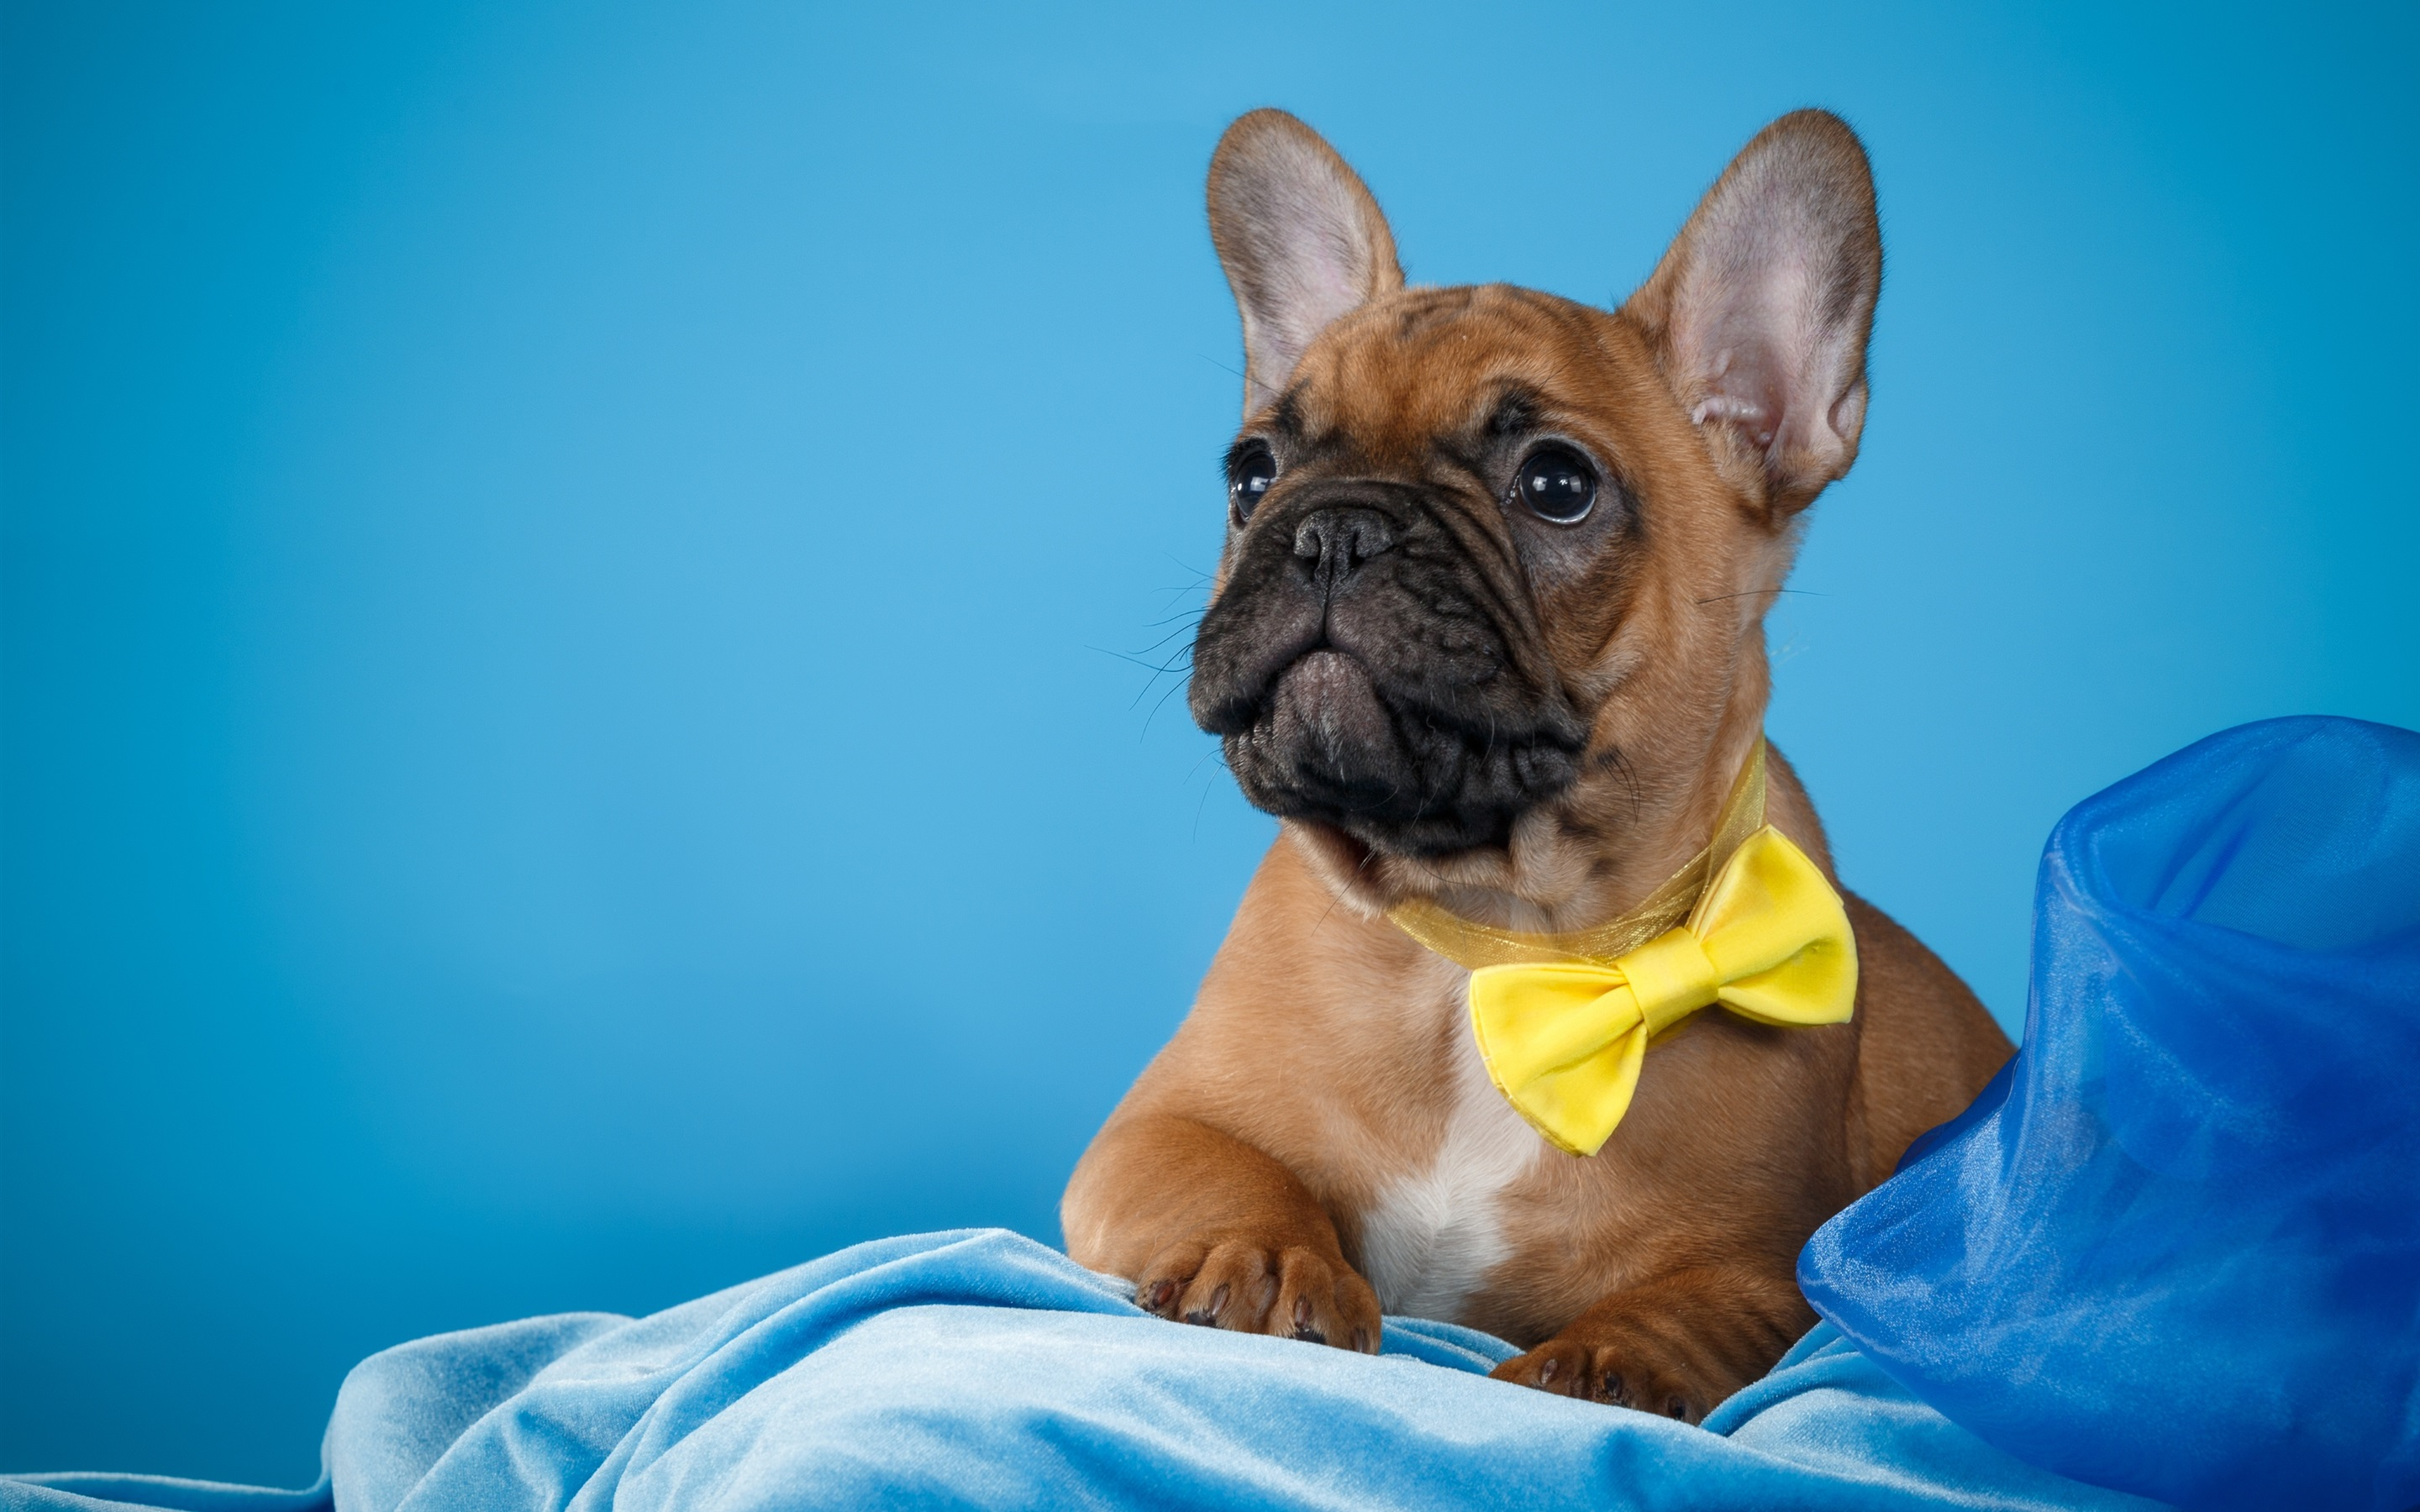 Wallpaper French Bulldog Blue Background 2880x1800 Hd Picture Image